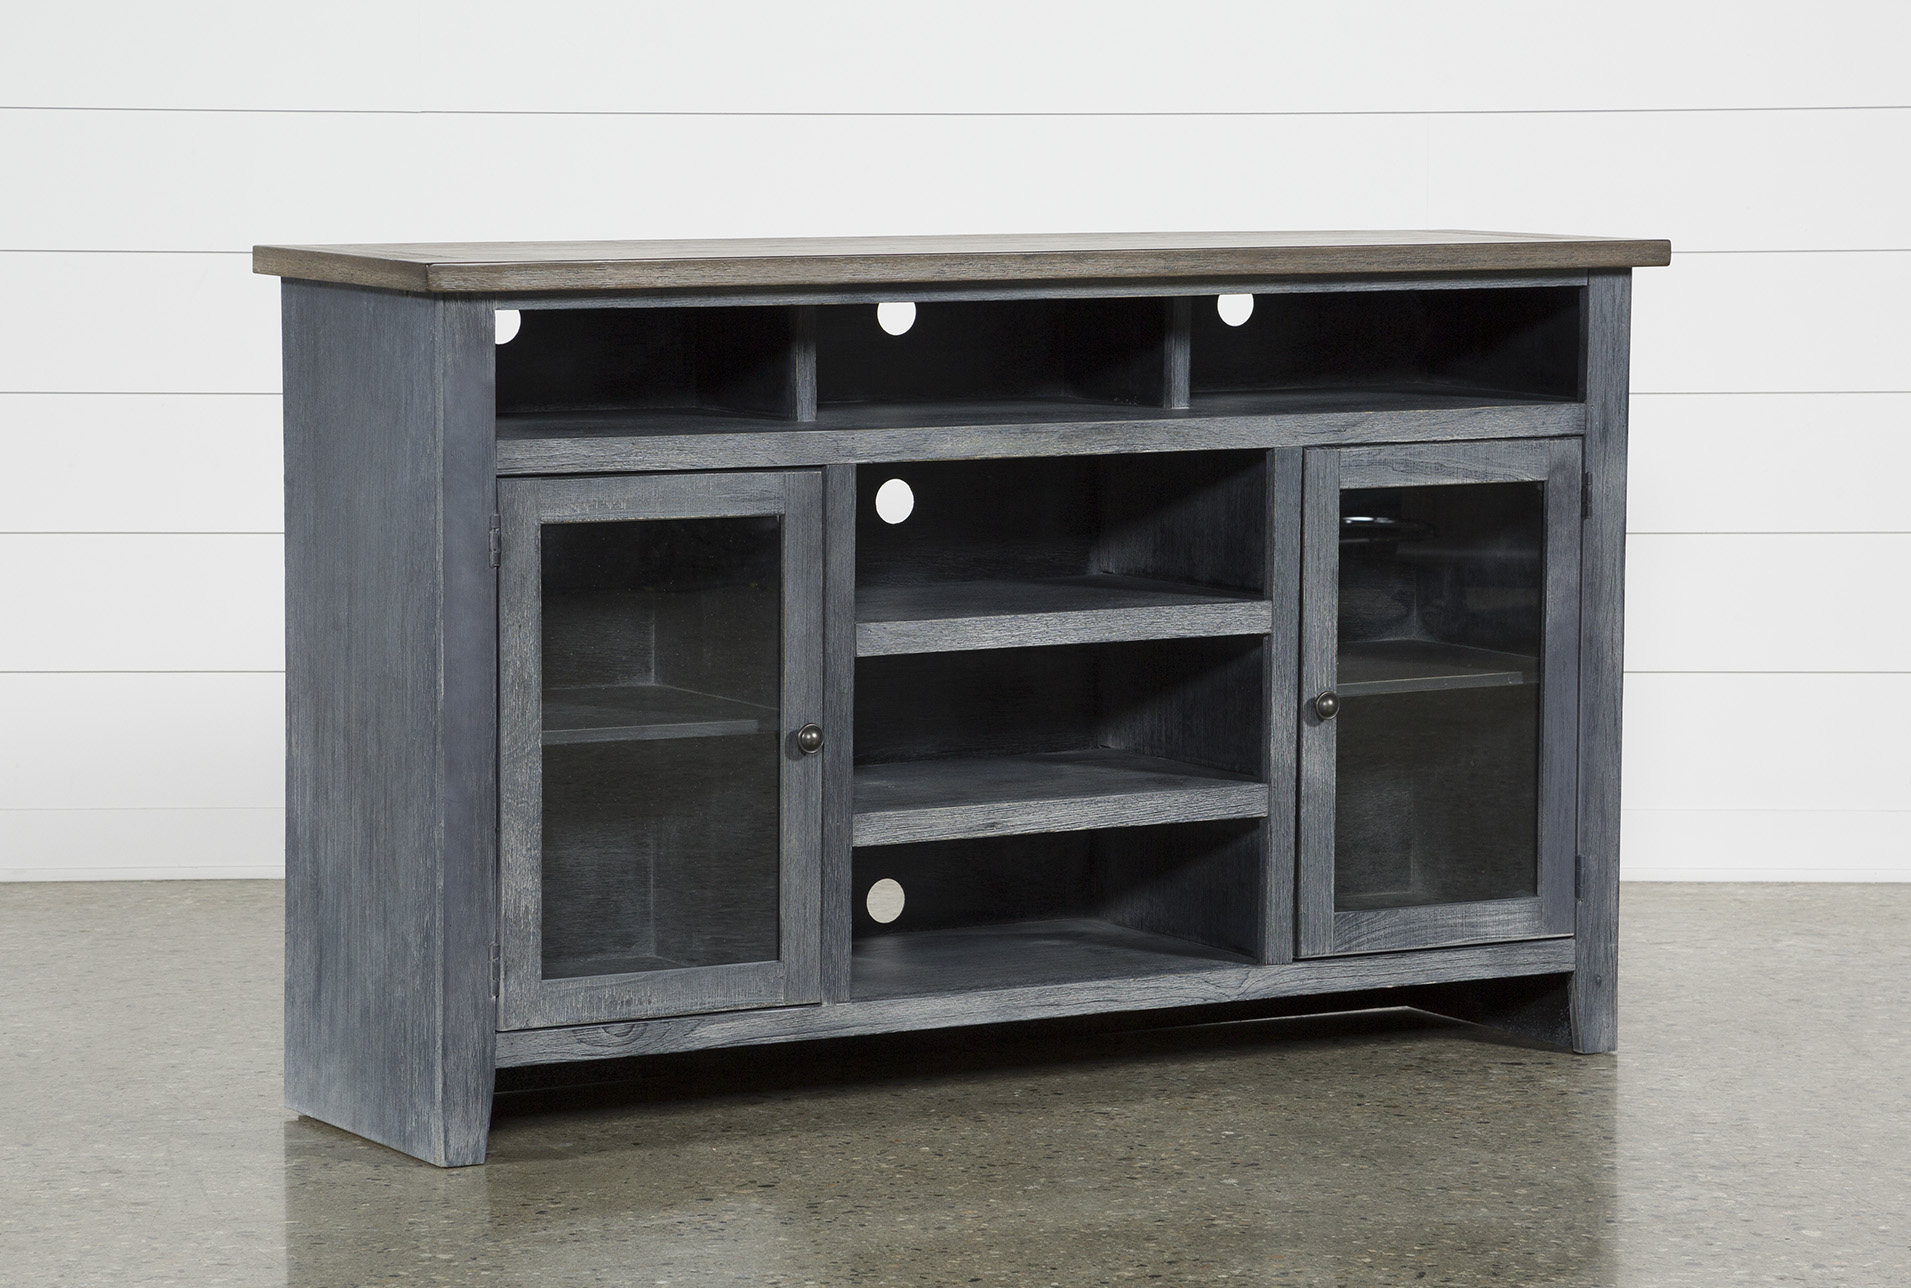 65 Inch Tv Furniture | Www.miifotos regarding Melrose Barnhouse Brown 65 Inch Lowboy Tv Stands (Image 2 of 30)